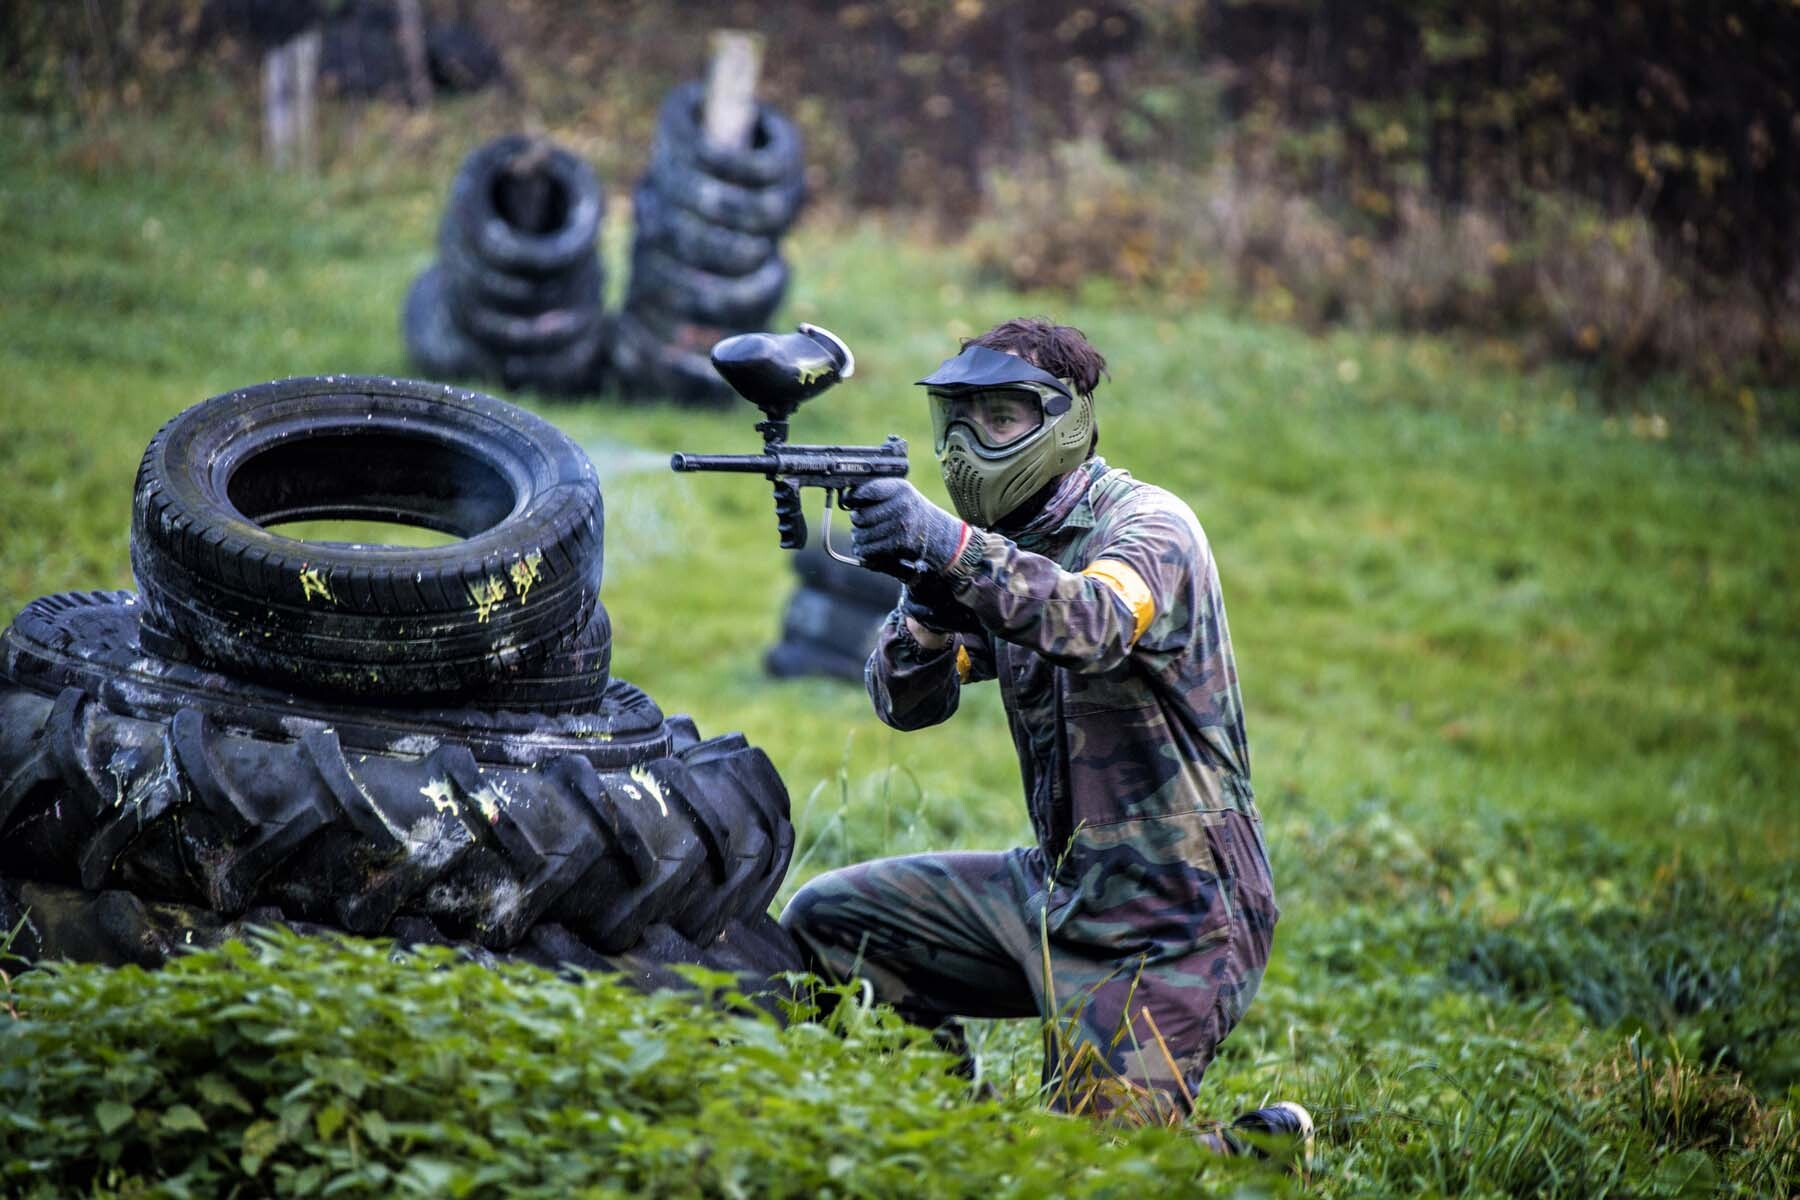 Paintball at a stag party